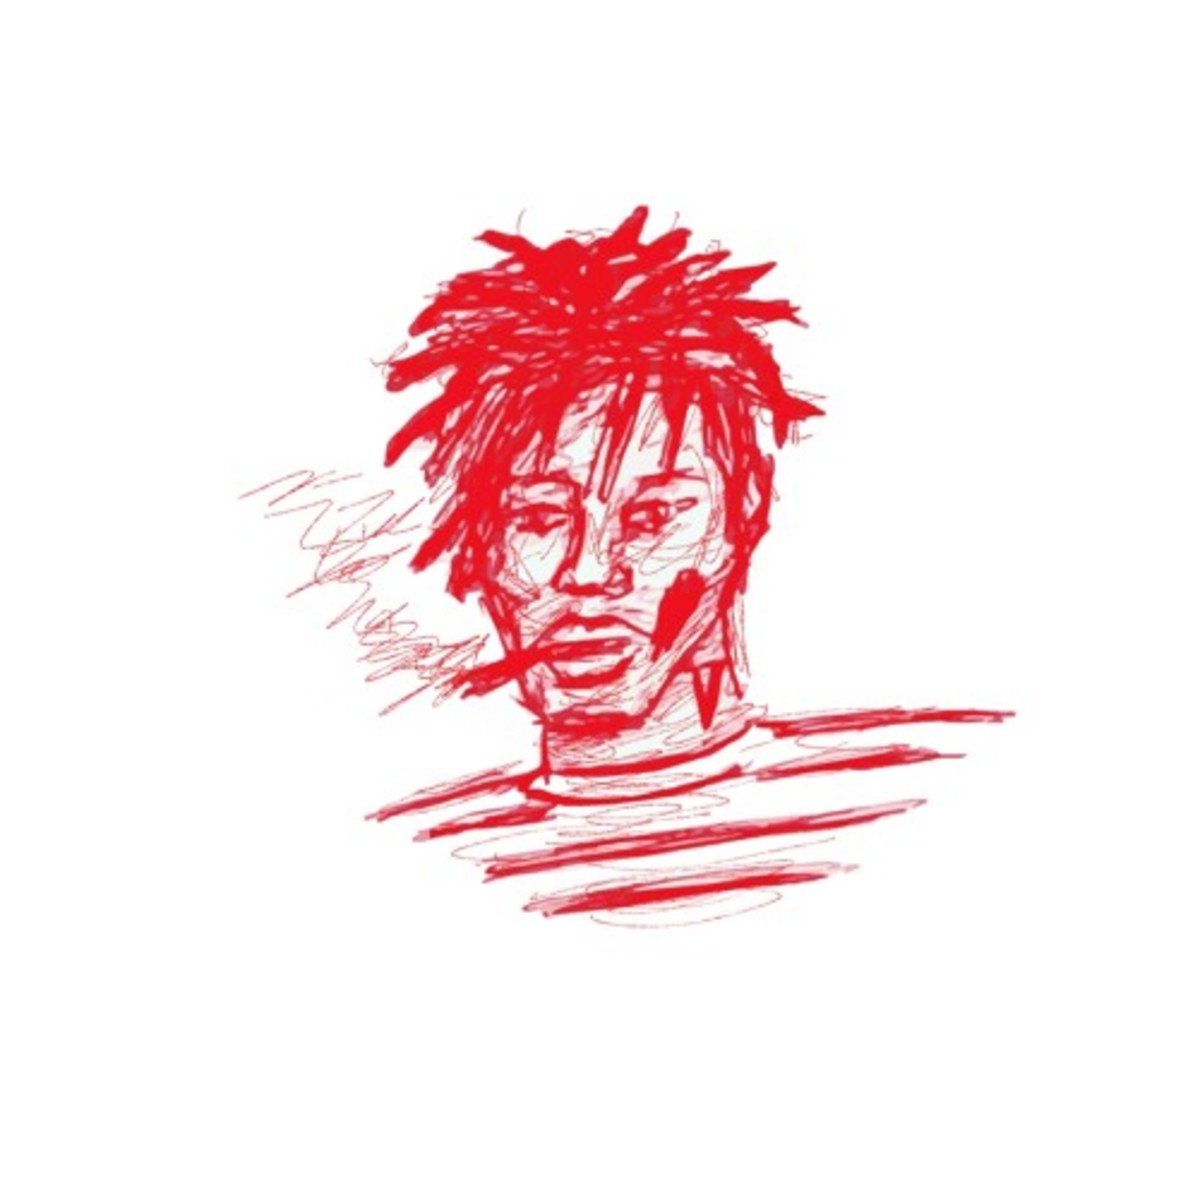 playboi-carti-uno-what.jpg